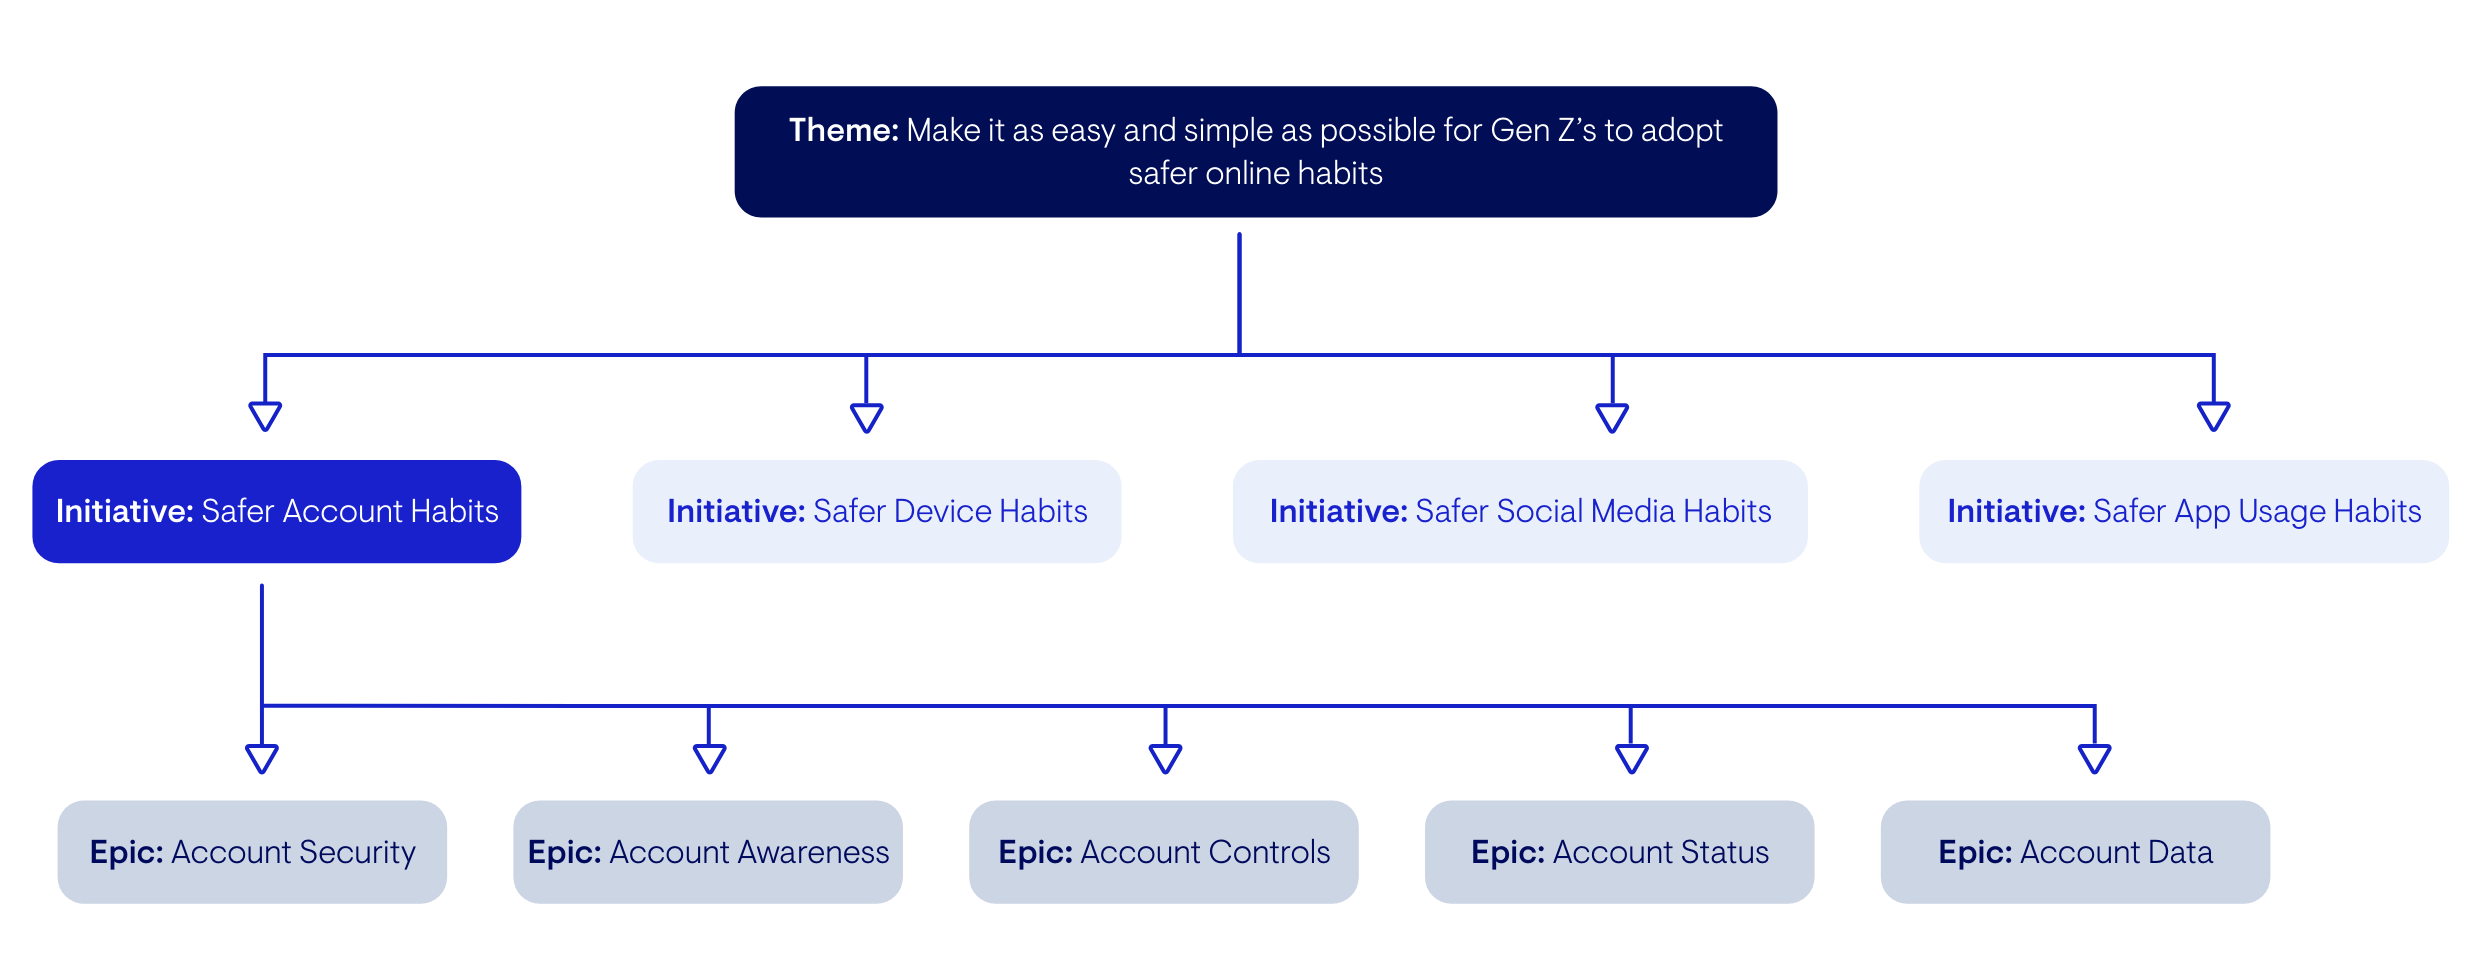 Diagram narrowing down to Safer Account Habits Initiative